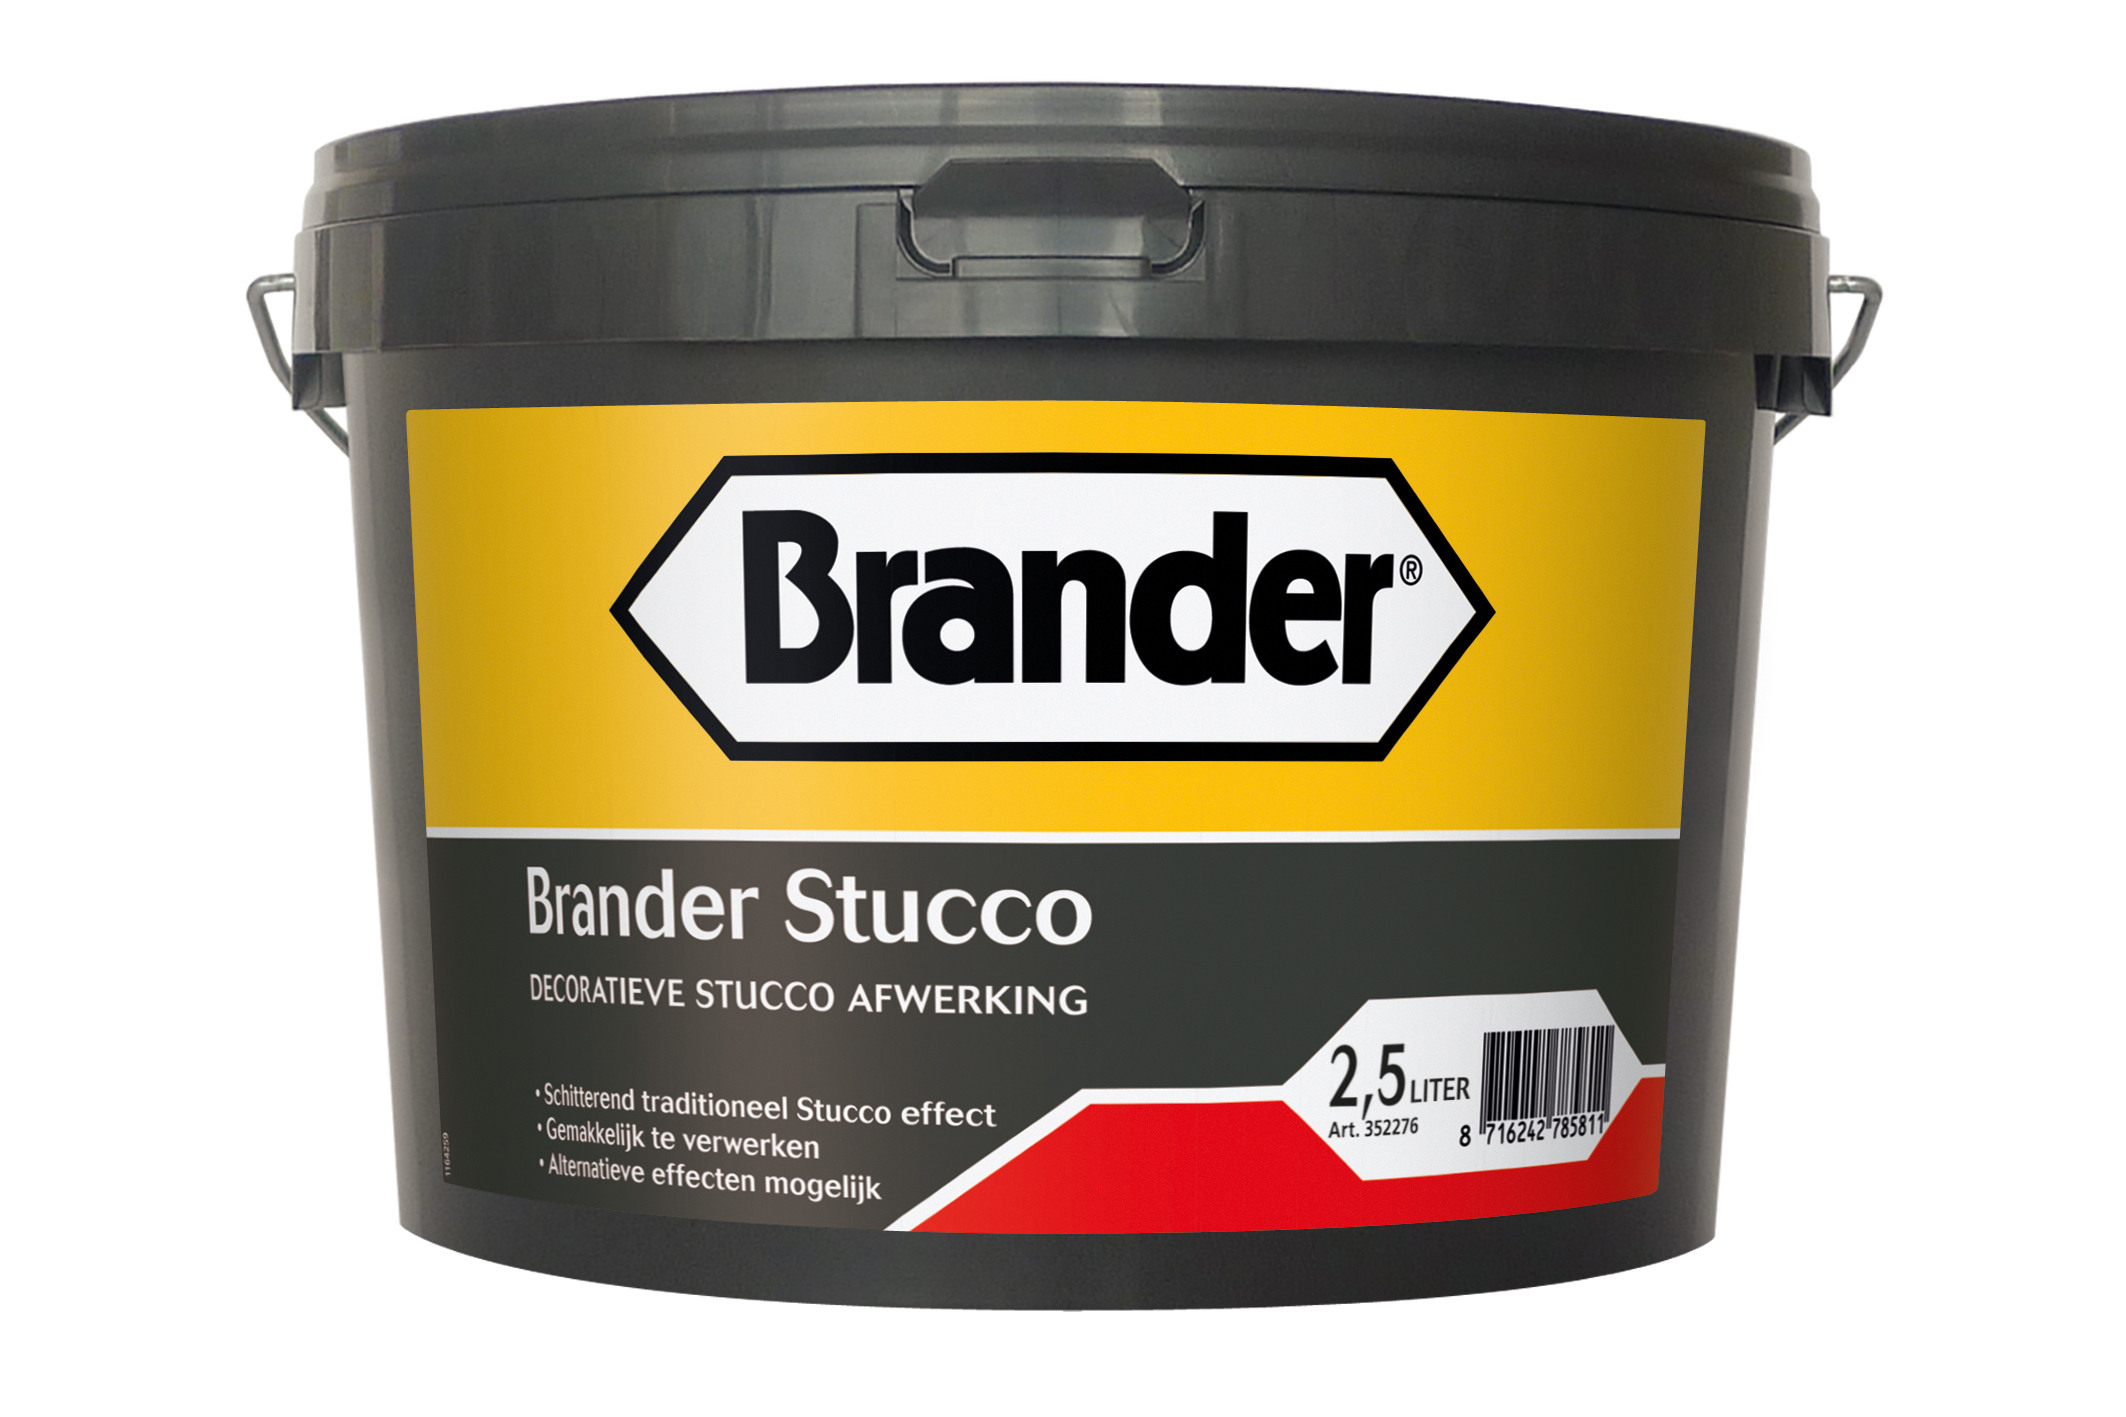 Brander Stucco Gloss